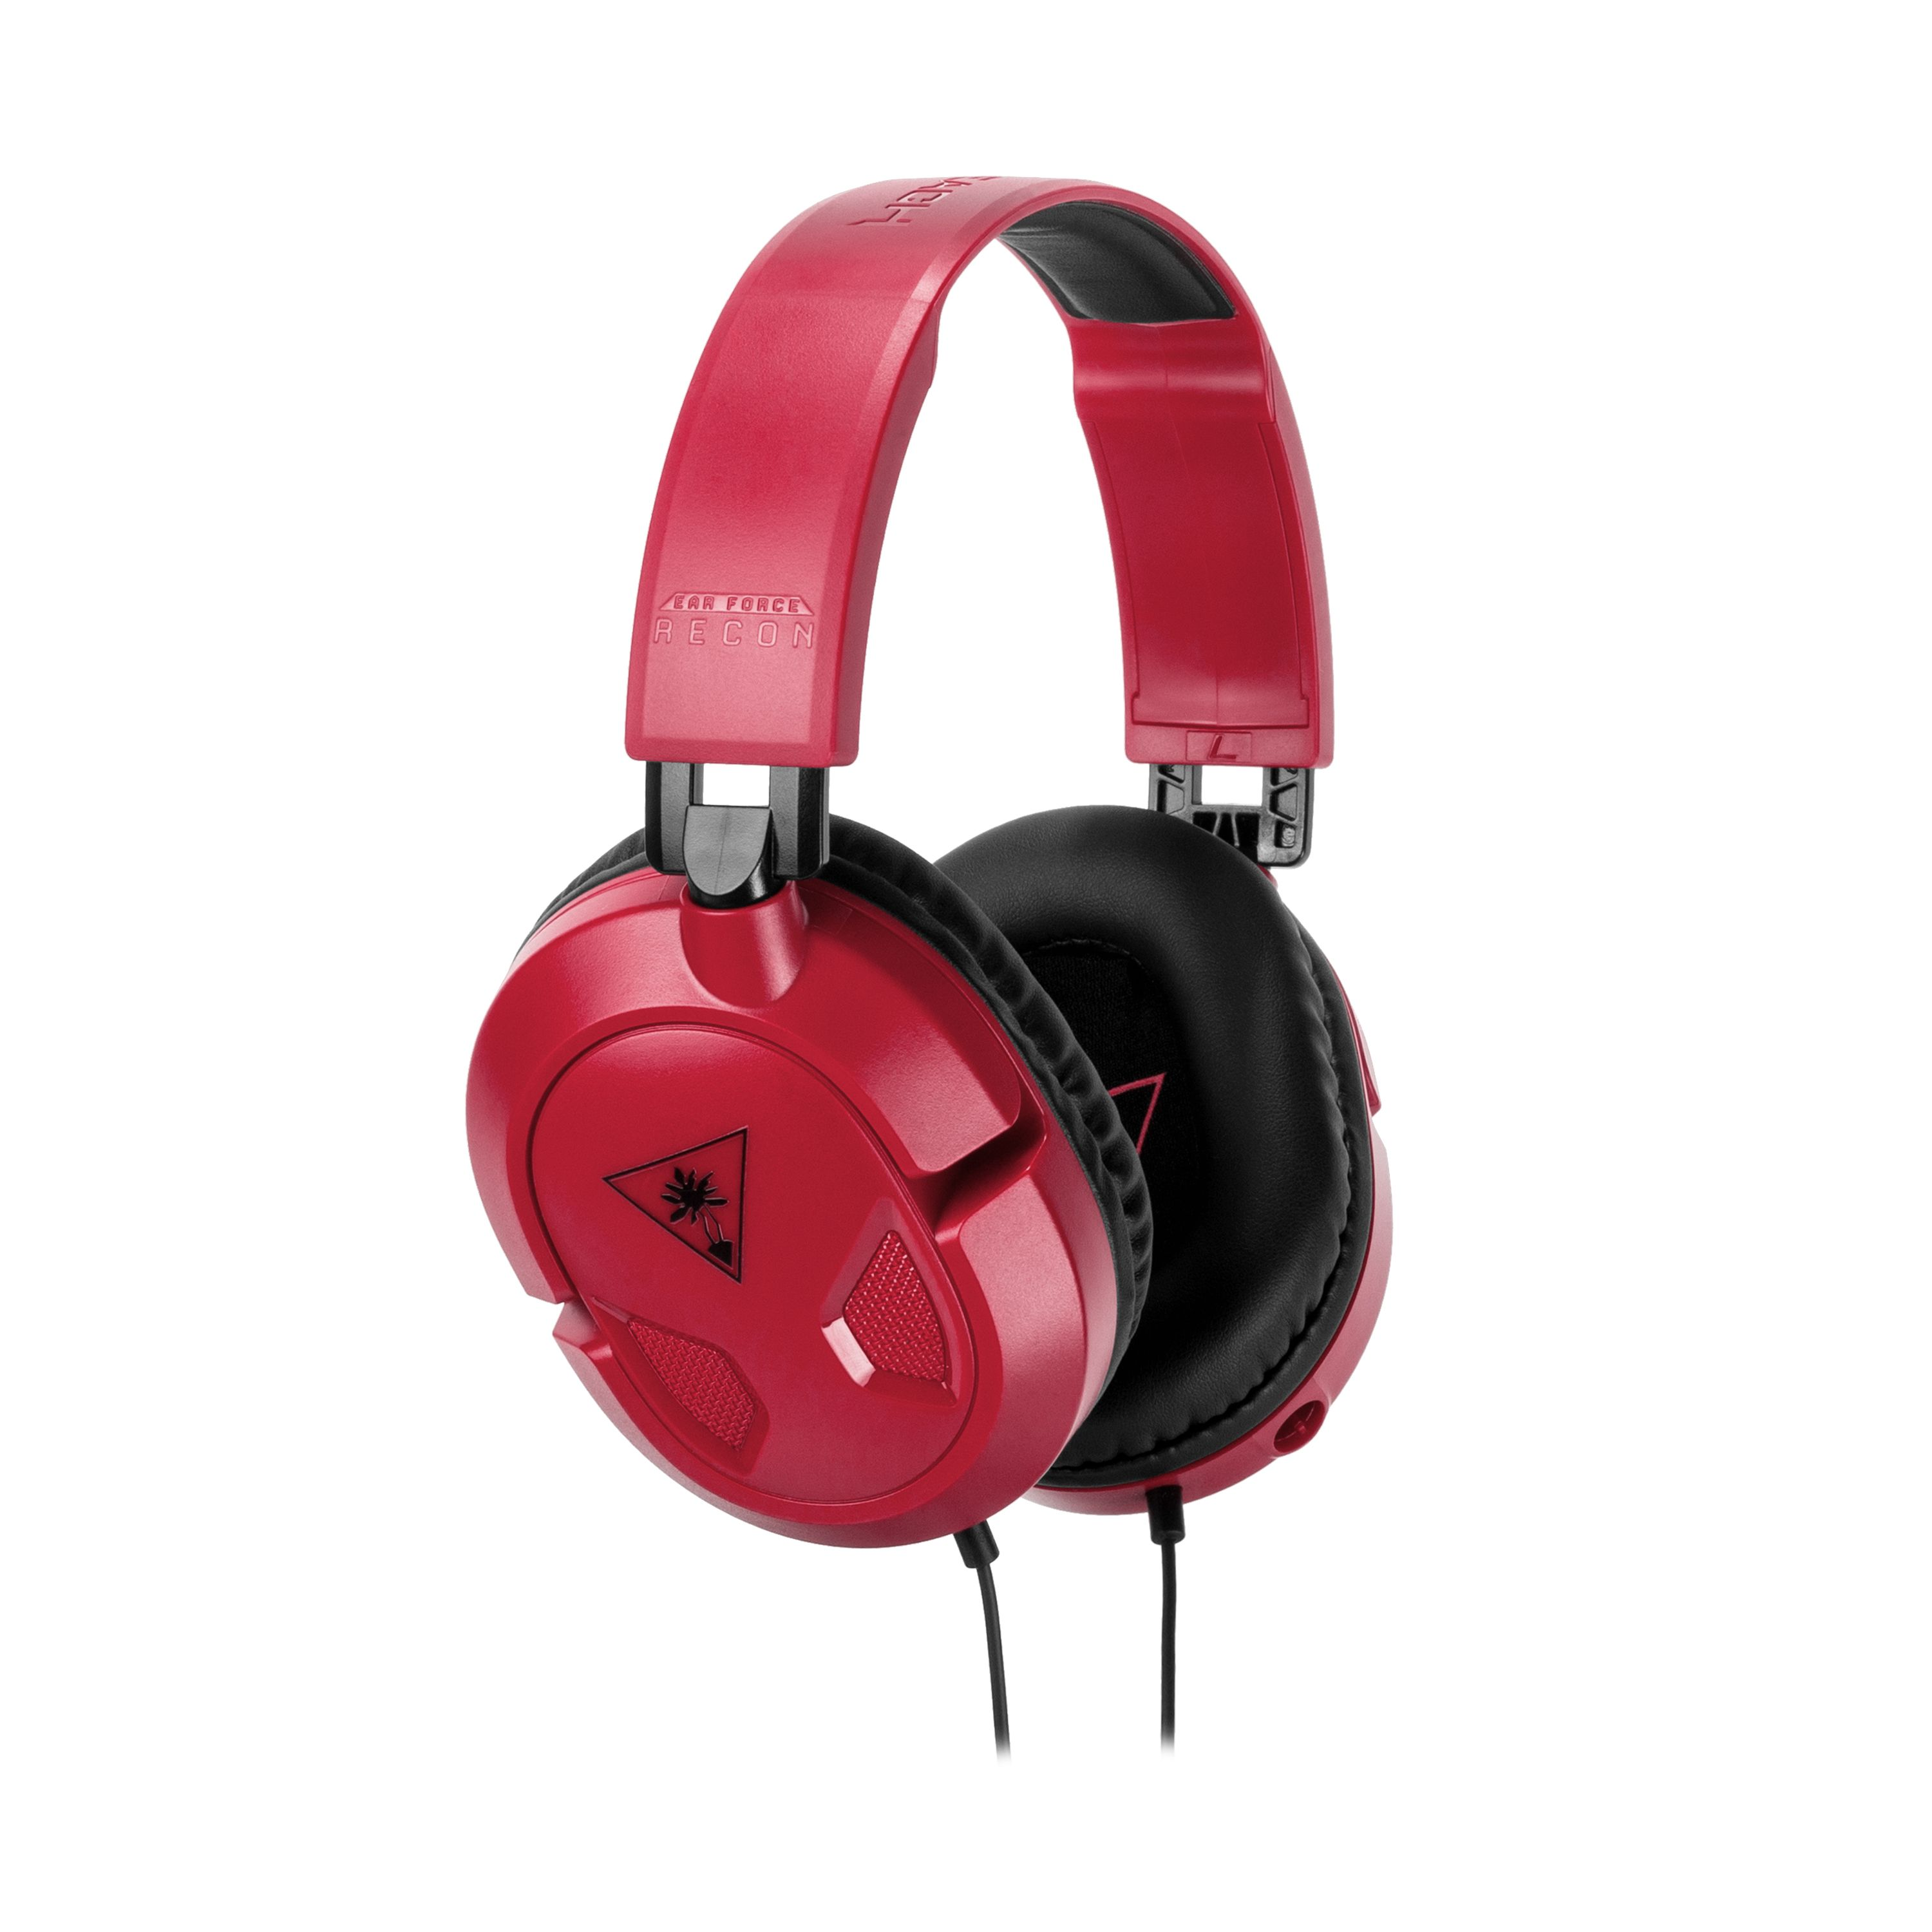 Turtle Beach Recon 50p Headset Red Walmart Exclusive Ps4 Xbox One Pc Mobile In 2019 Xbox One Pc Xbox One Xbox